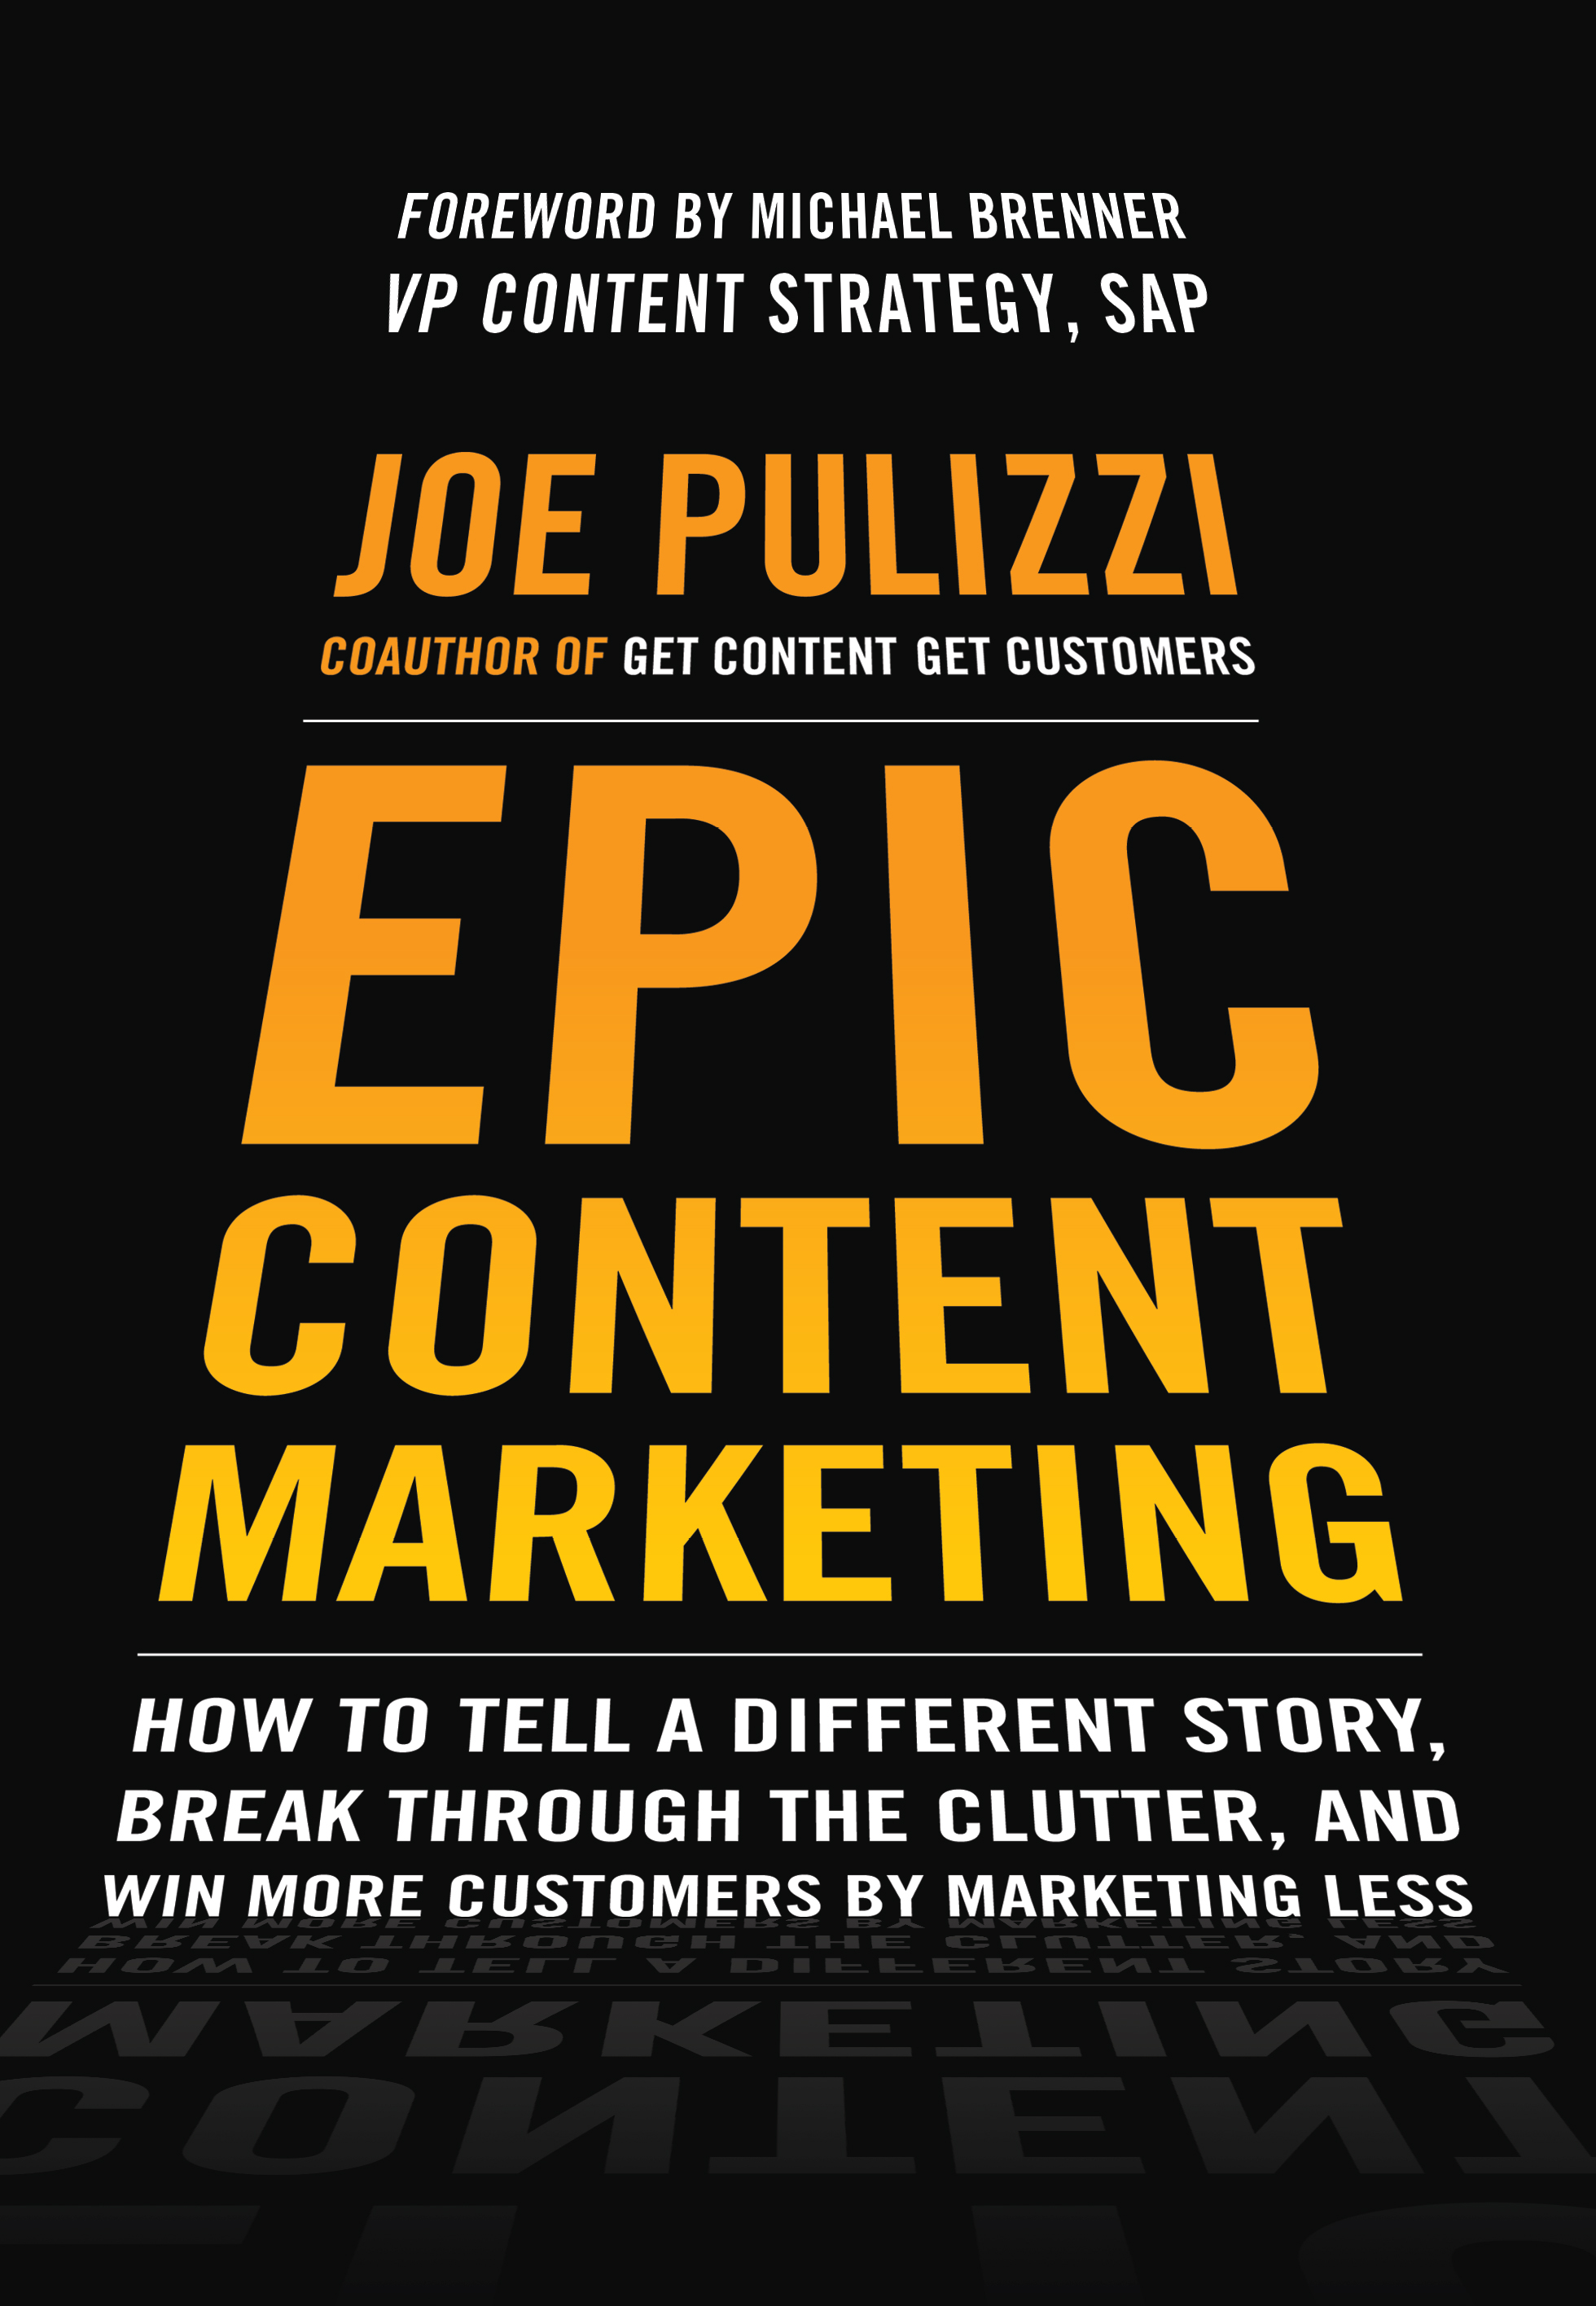 Download Ebook Epic Content Marketing: How to Tell a Different Story, Break through the Clutter, and Win More Customers by Marketing Less by Joe Pulizzi Pdf